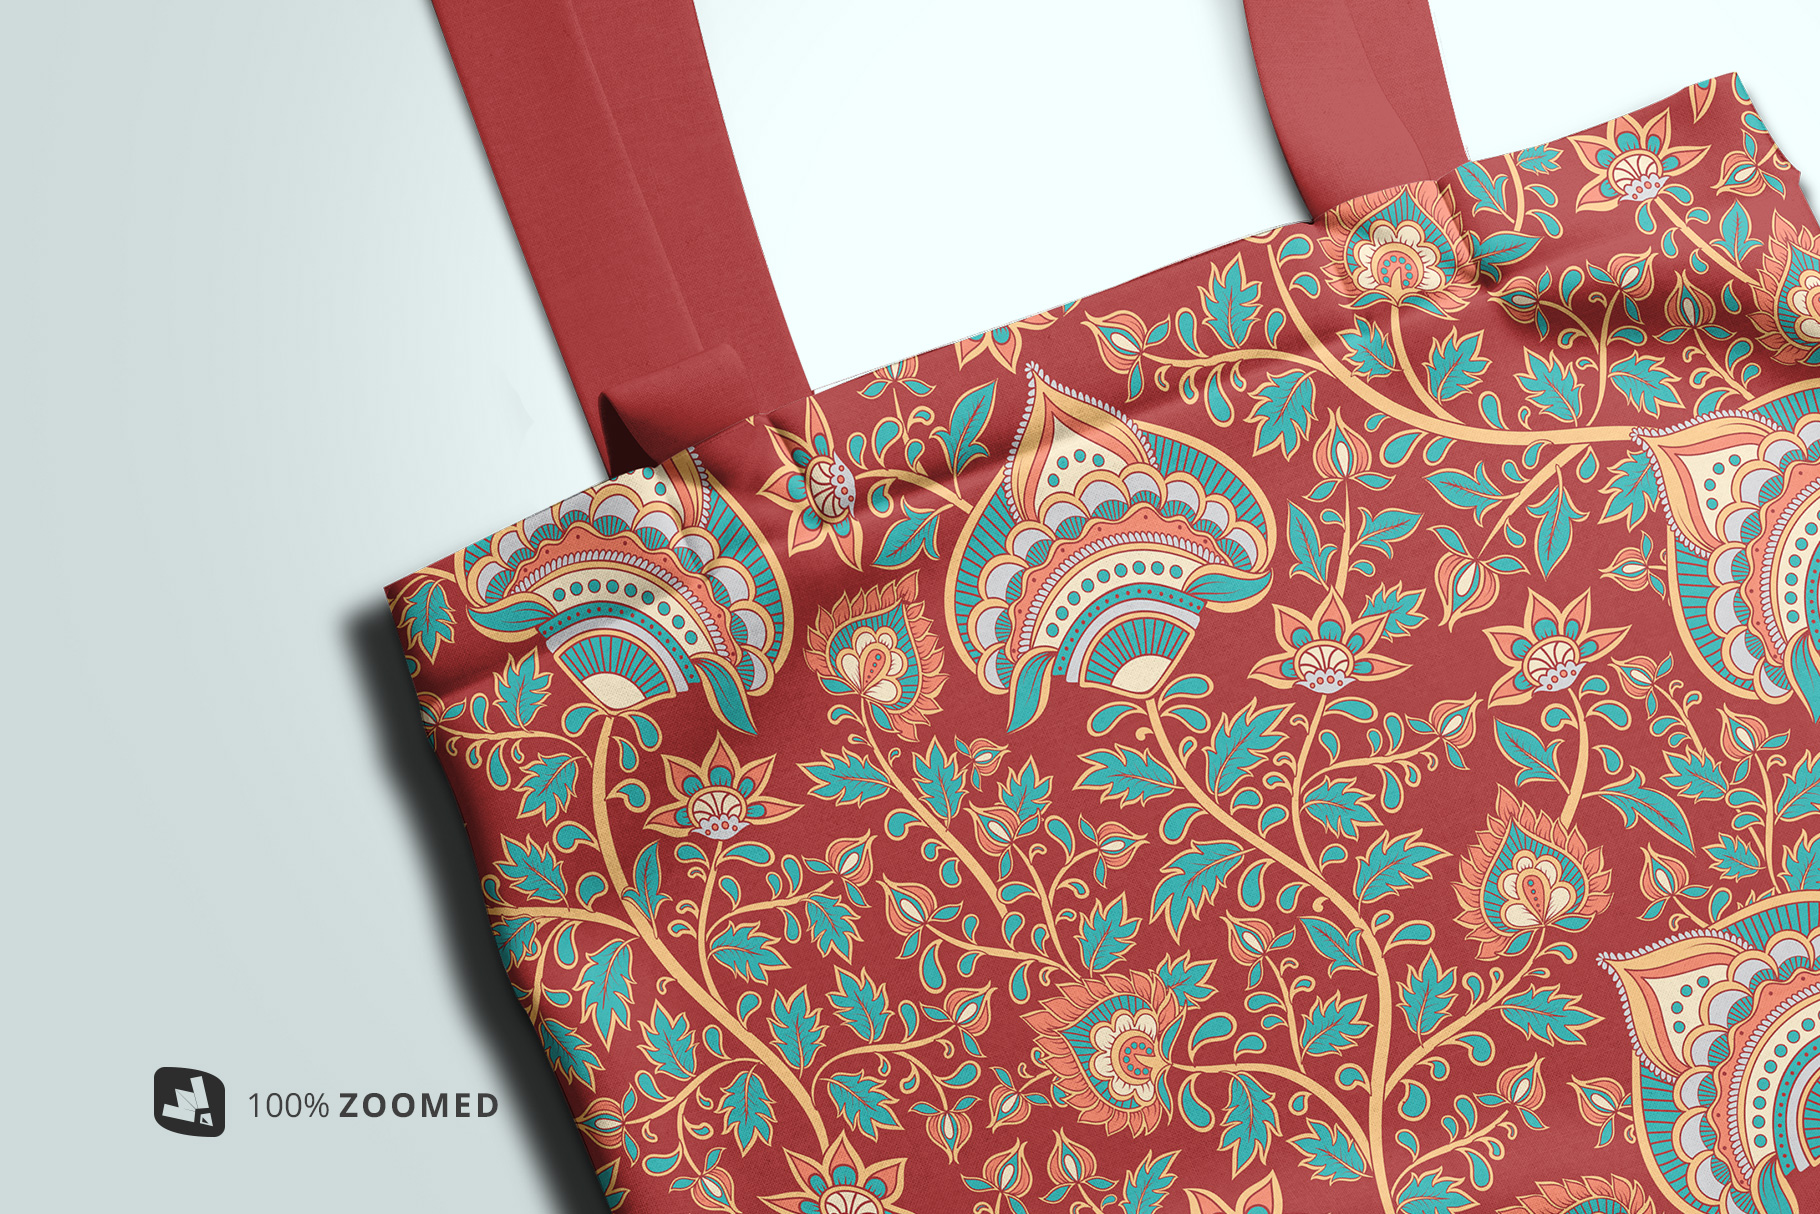 zoomed in image of the topview reusable cotton bag mockup